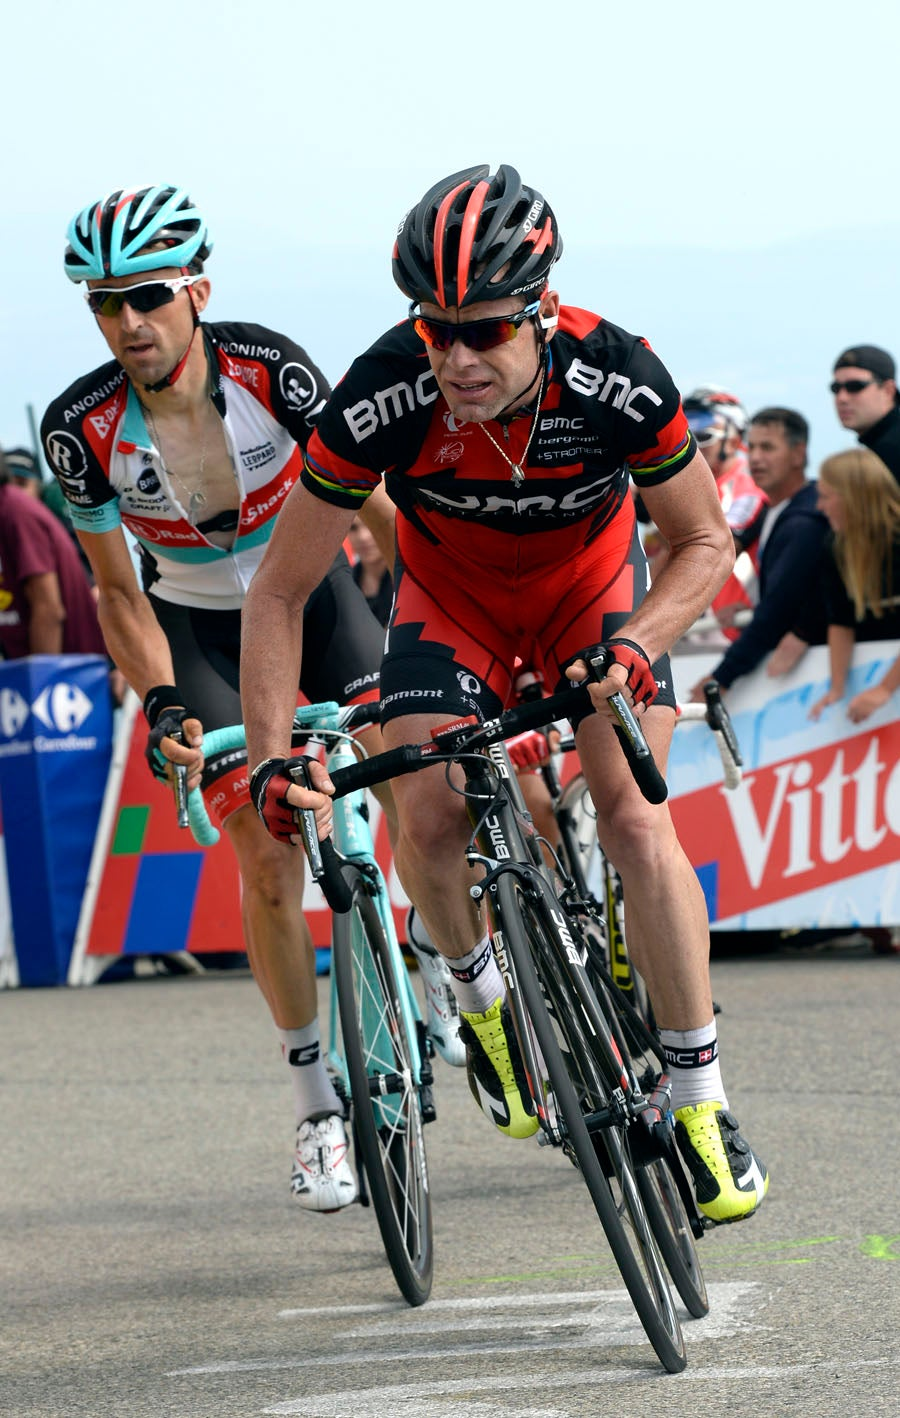 I just want to finish the Tour, says struggling Evans